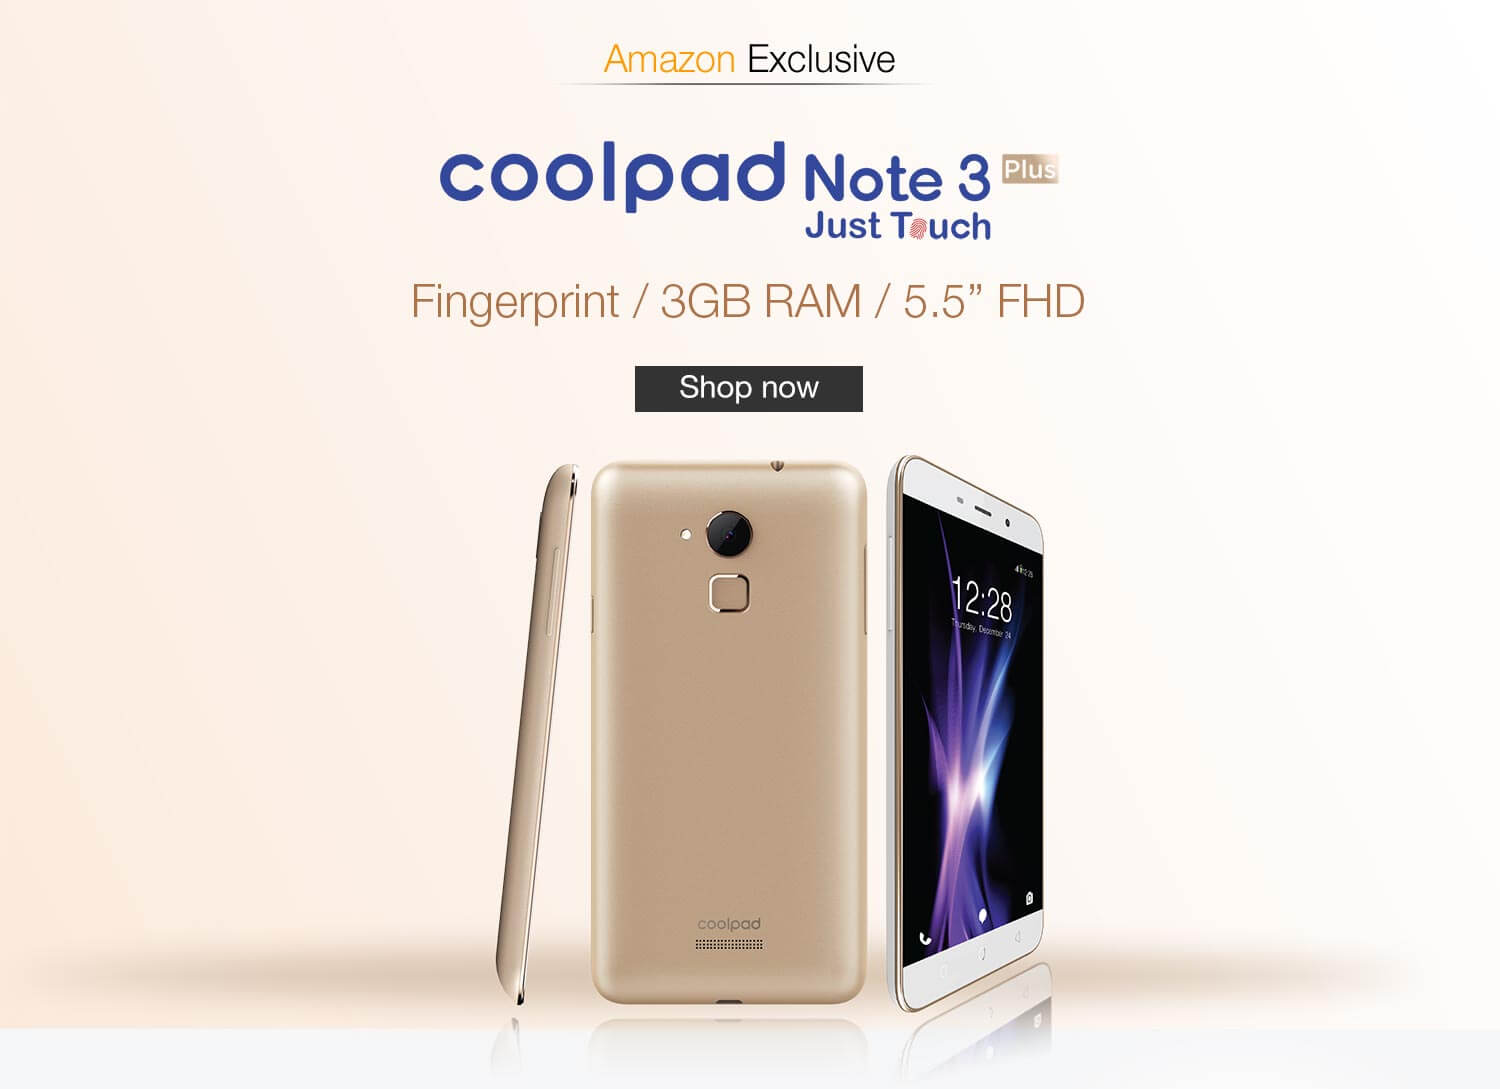 Coolpad Note 3 Plus Coolpad Note 3 Plus Specification Features At